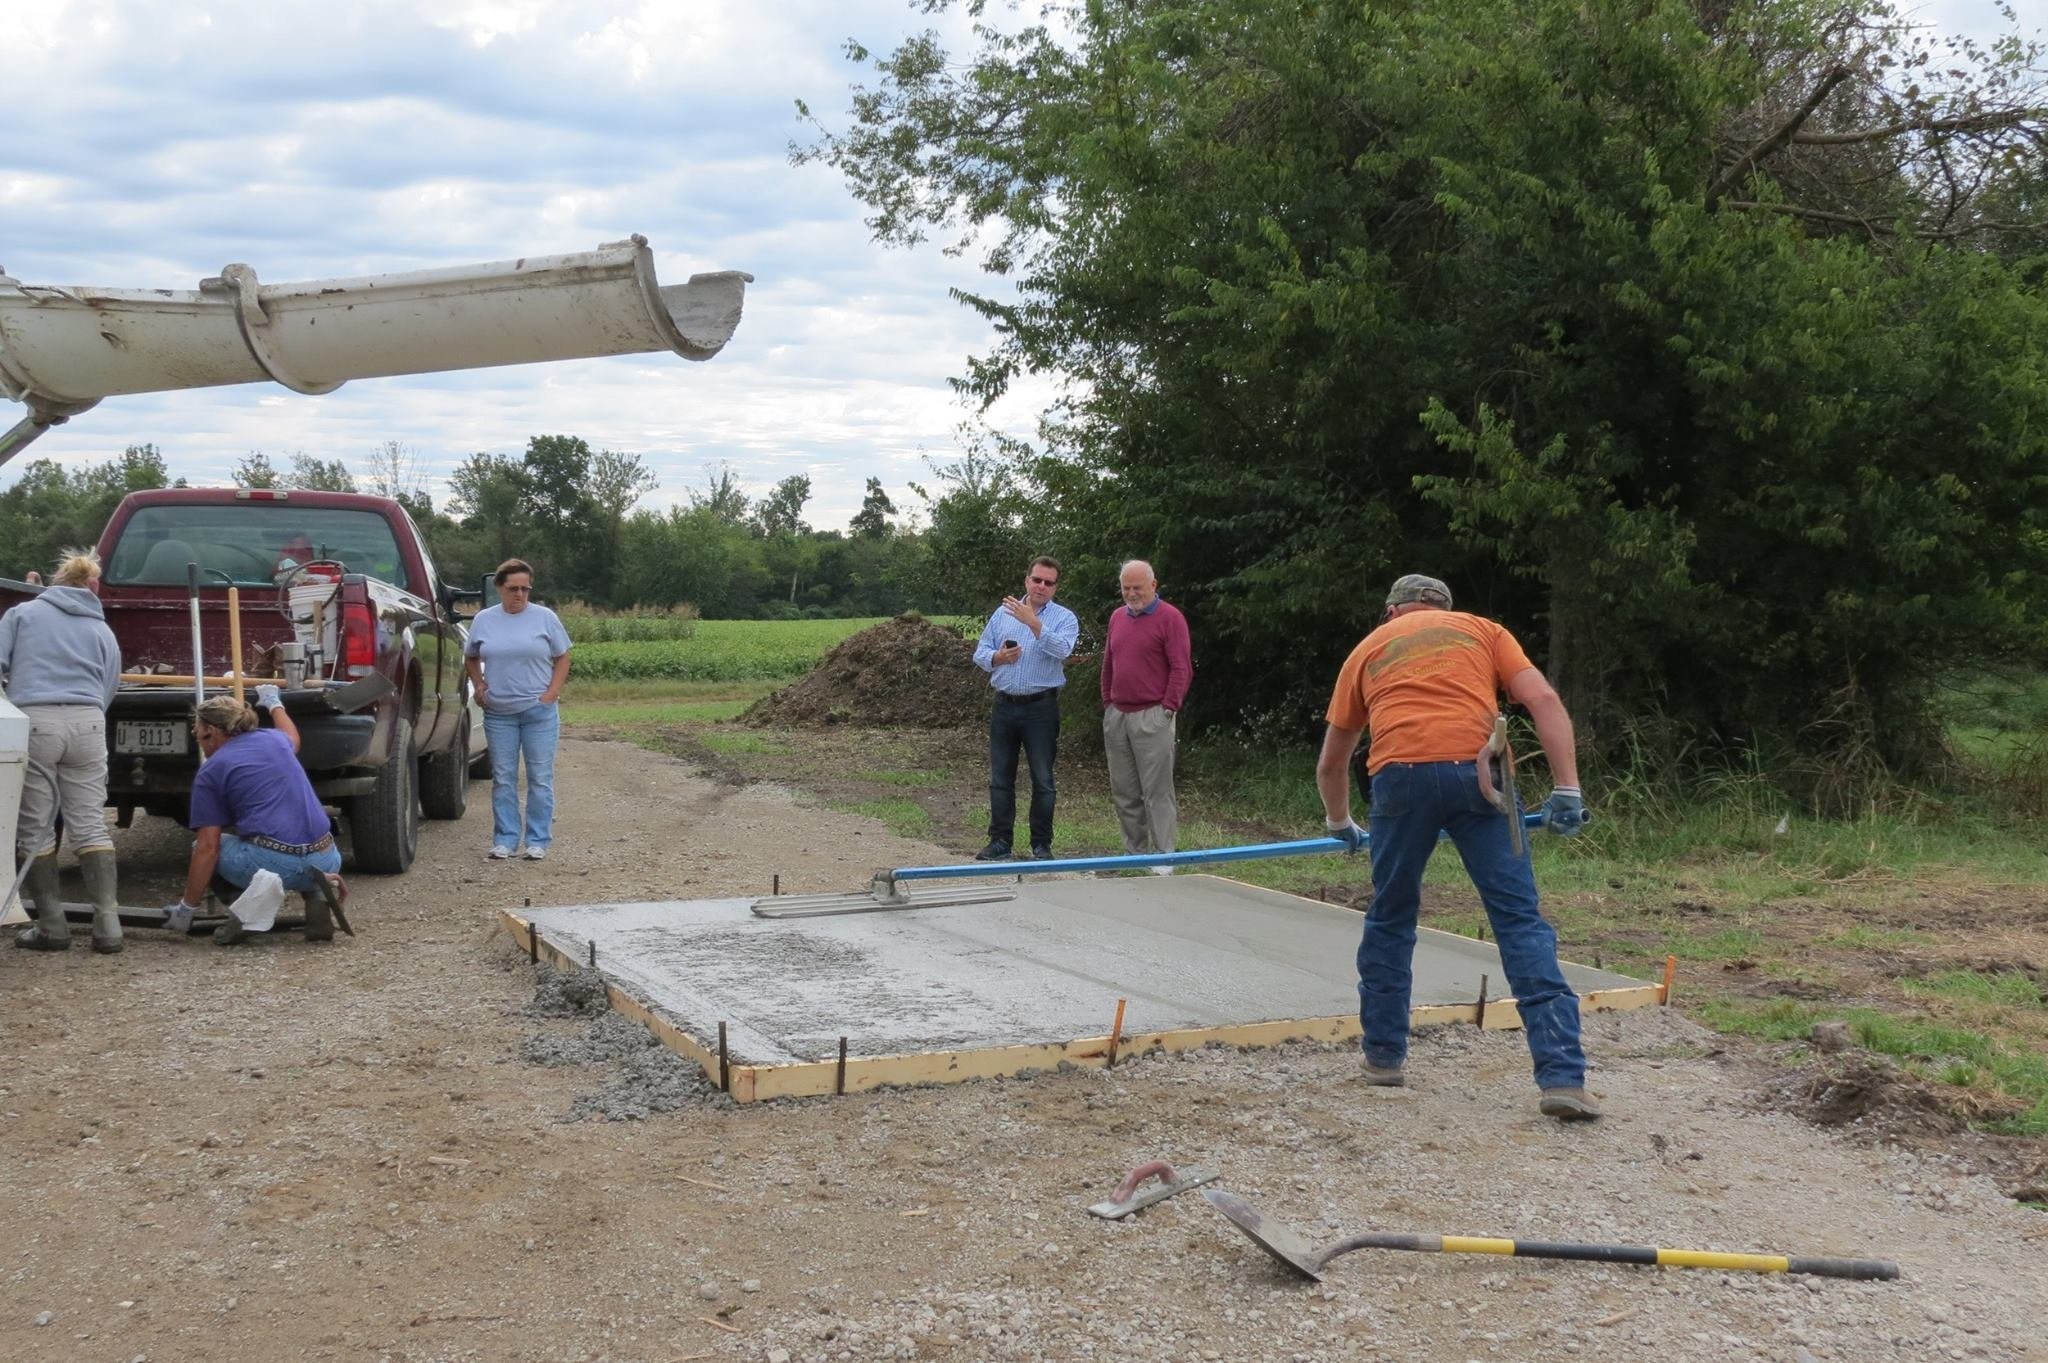 Concrete pads poured last week will be used for stargazing and other astronomical observation until the eclipse next year. (Photo courtesy Bob Baer)